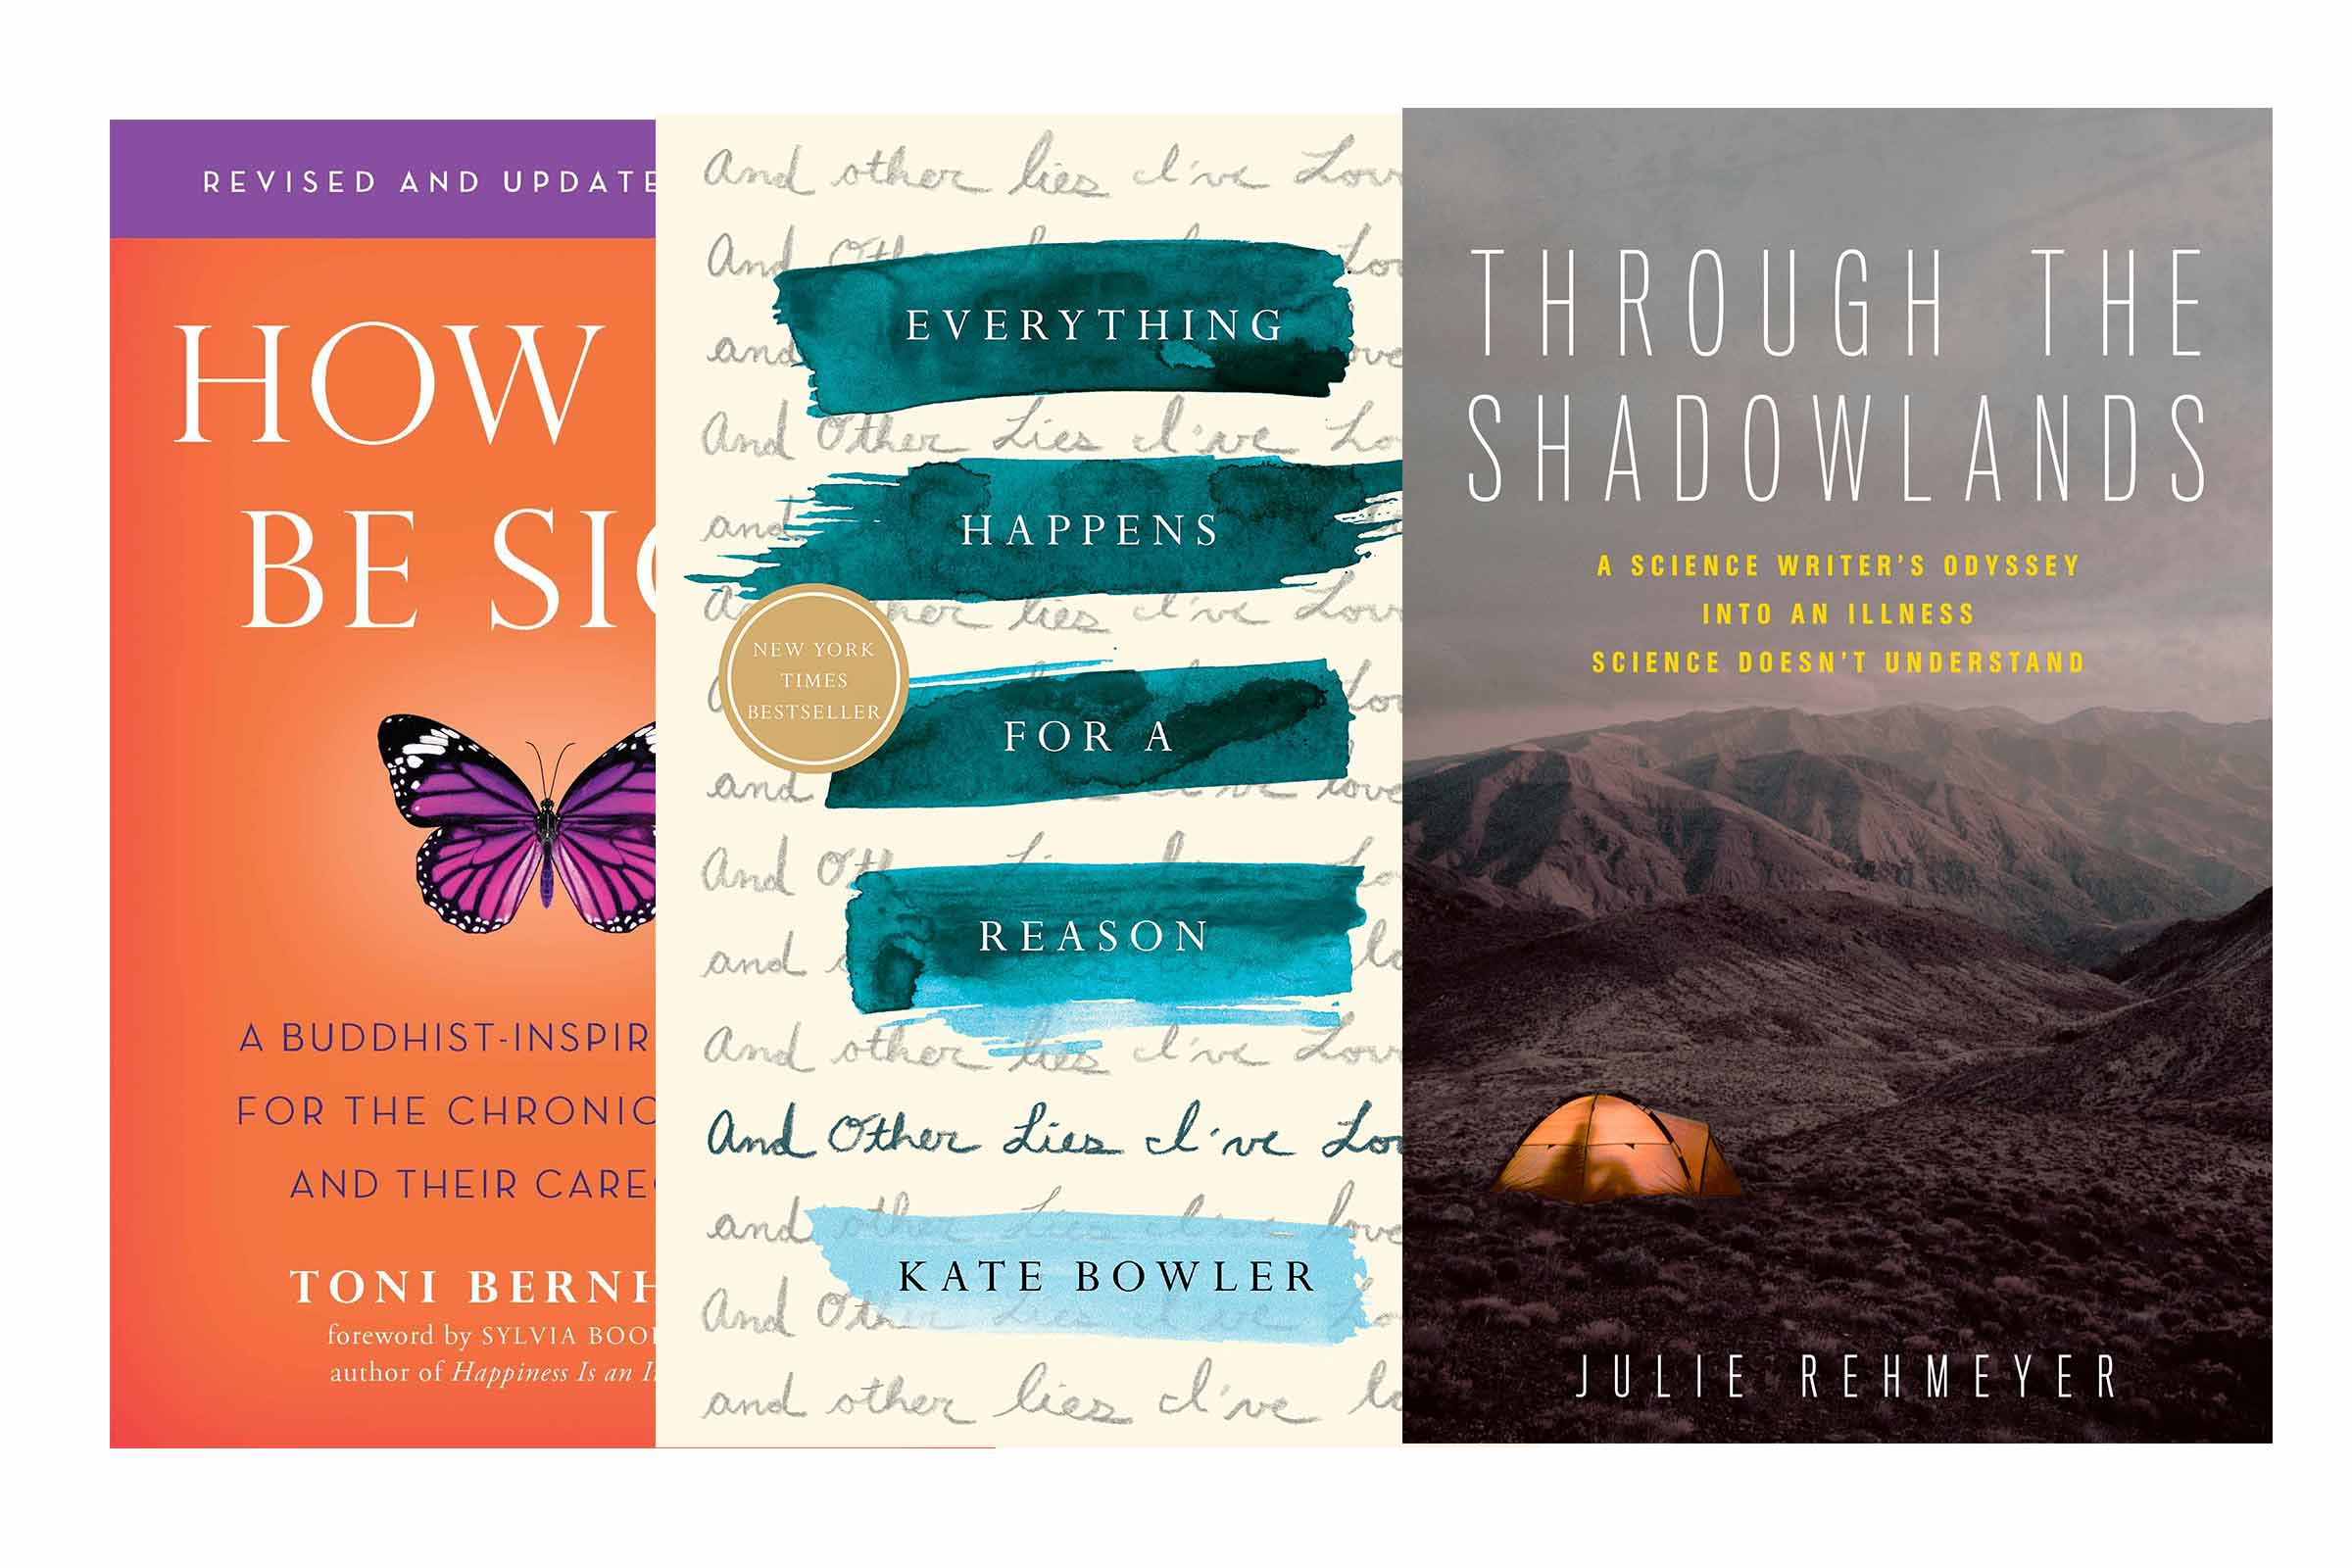 Inspiring Books to Read If You Have Chronic Illness